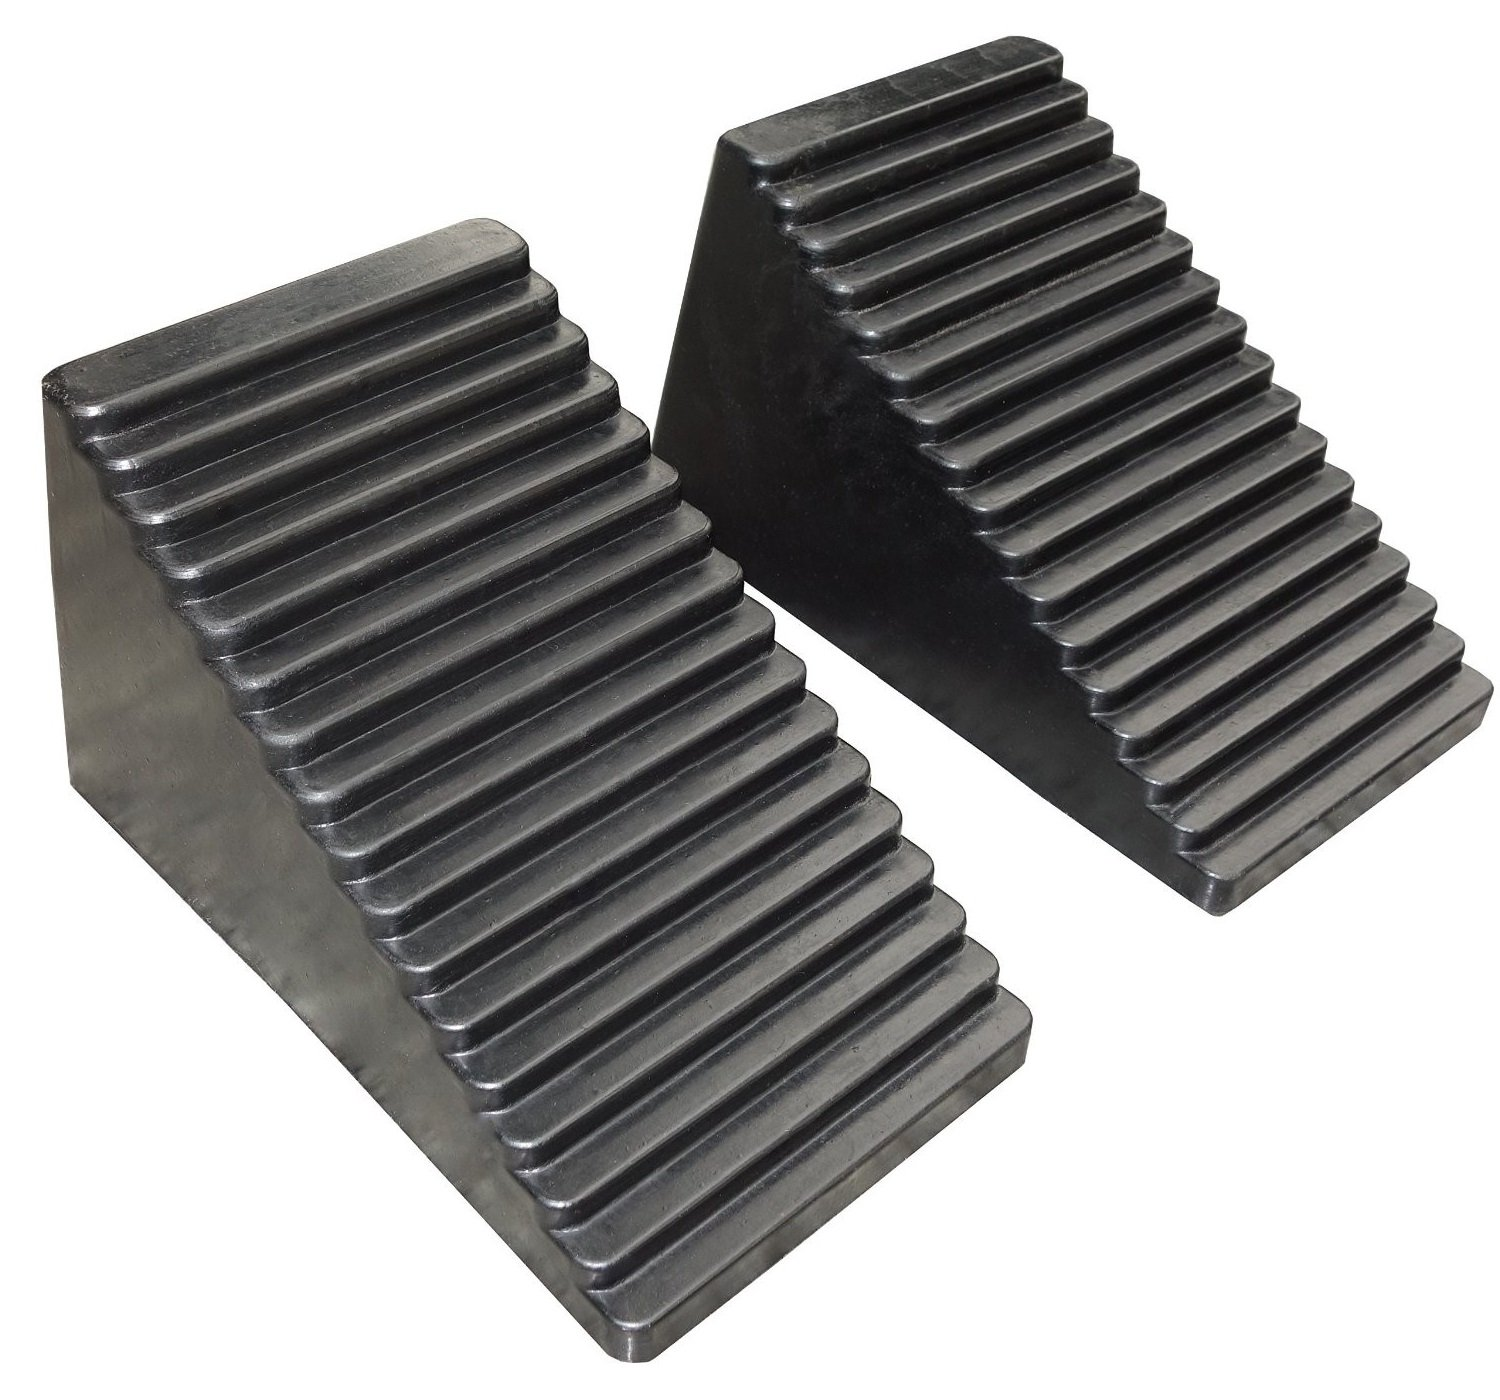 YM W4515 Rubber Wheel Chock, 6-1/2'' Length x 3-1/2'' Width x 3-3/4'' Height - Pack of 2